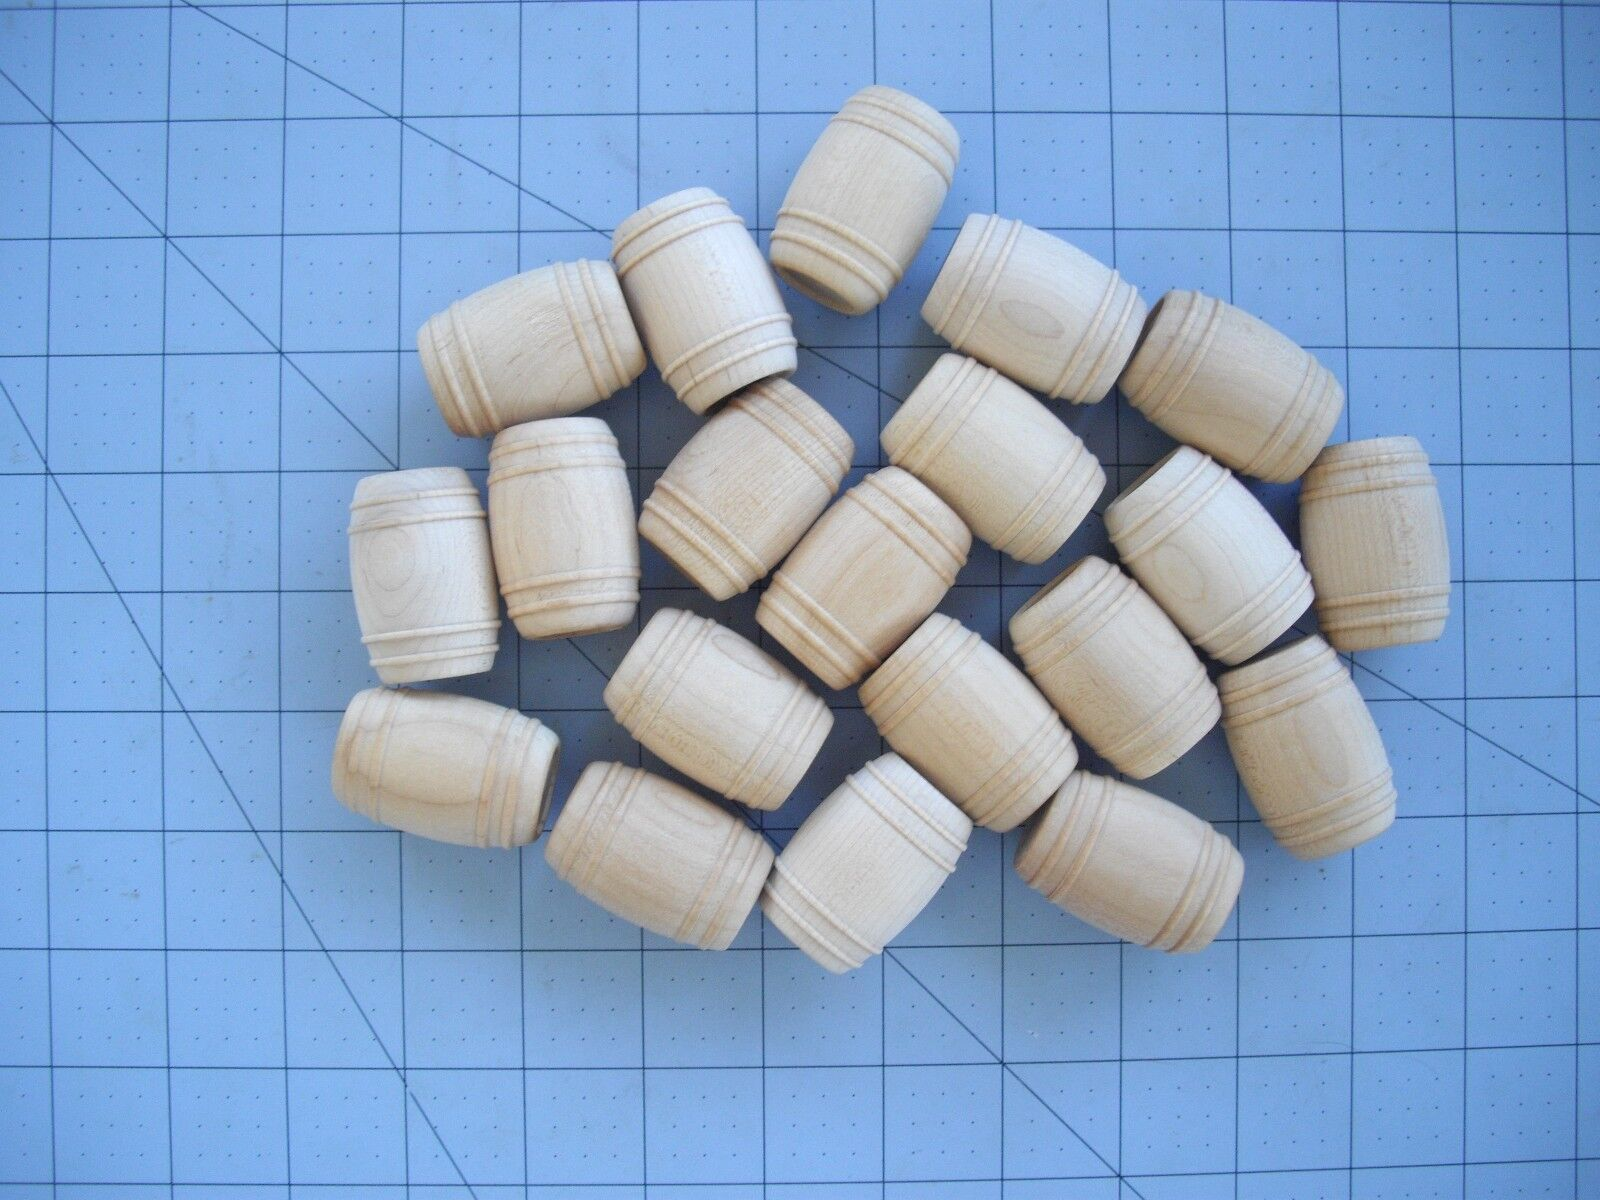 20 Toy Wooden Barrels Solid Natural Unpainted Wood 1 1 2  Tall Hobby Crafts